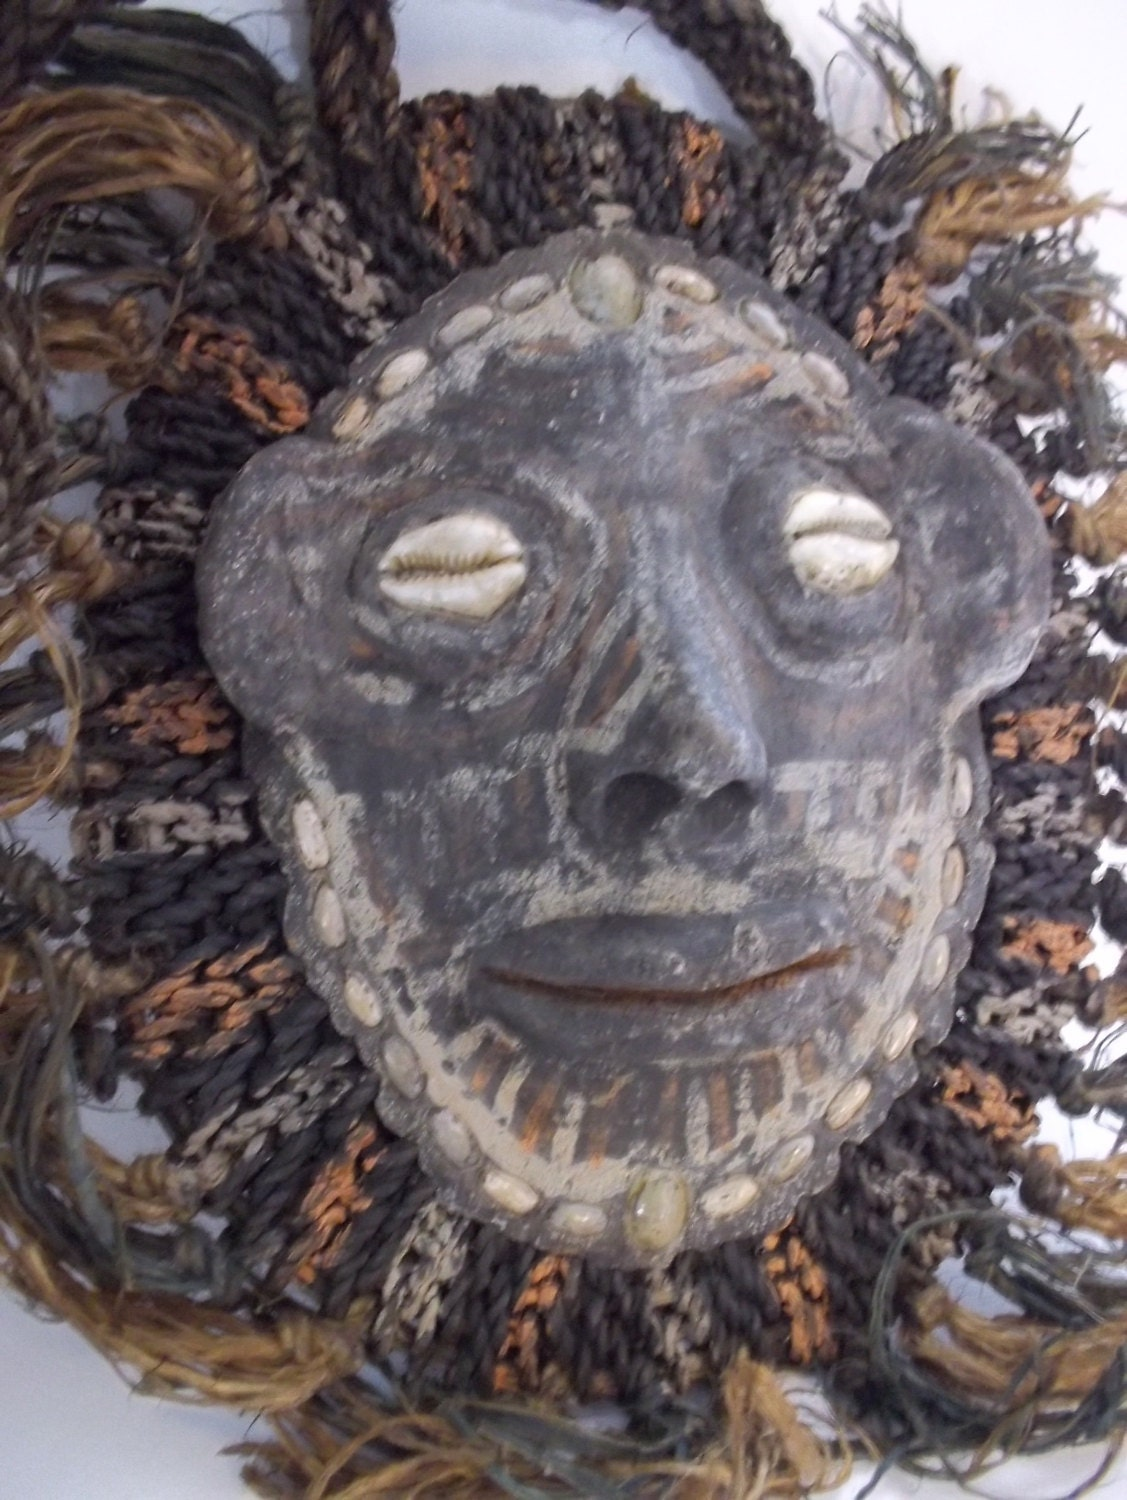 ViNTAGE PAPUA NEW GUiNEA Turtle Mask/ Middle Sepik River Papua New Guinea/ SPiRIT Mask/ Ceremonial Masks/TRiBAL ART